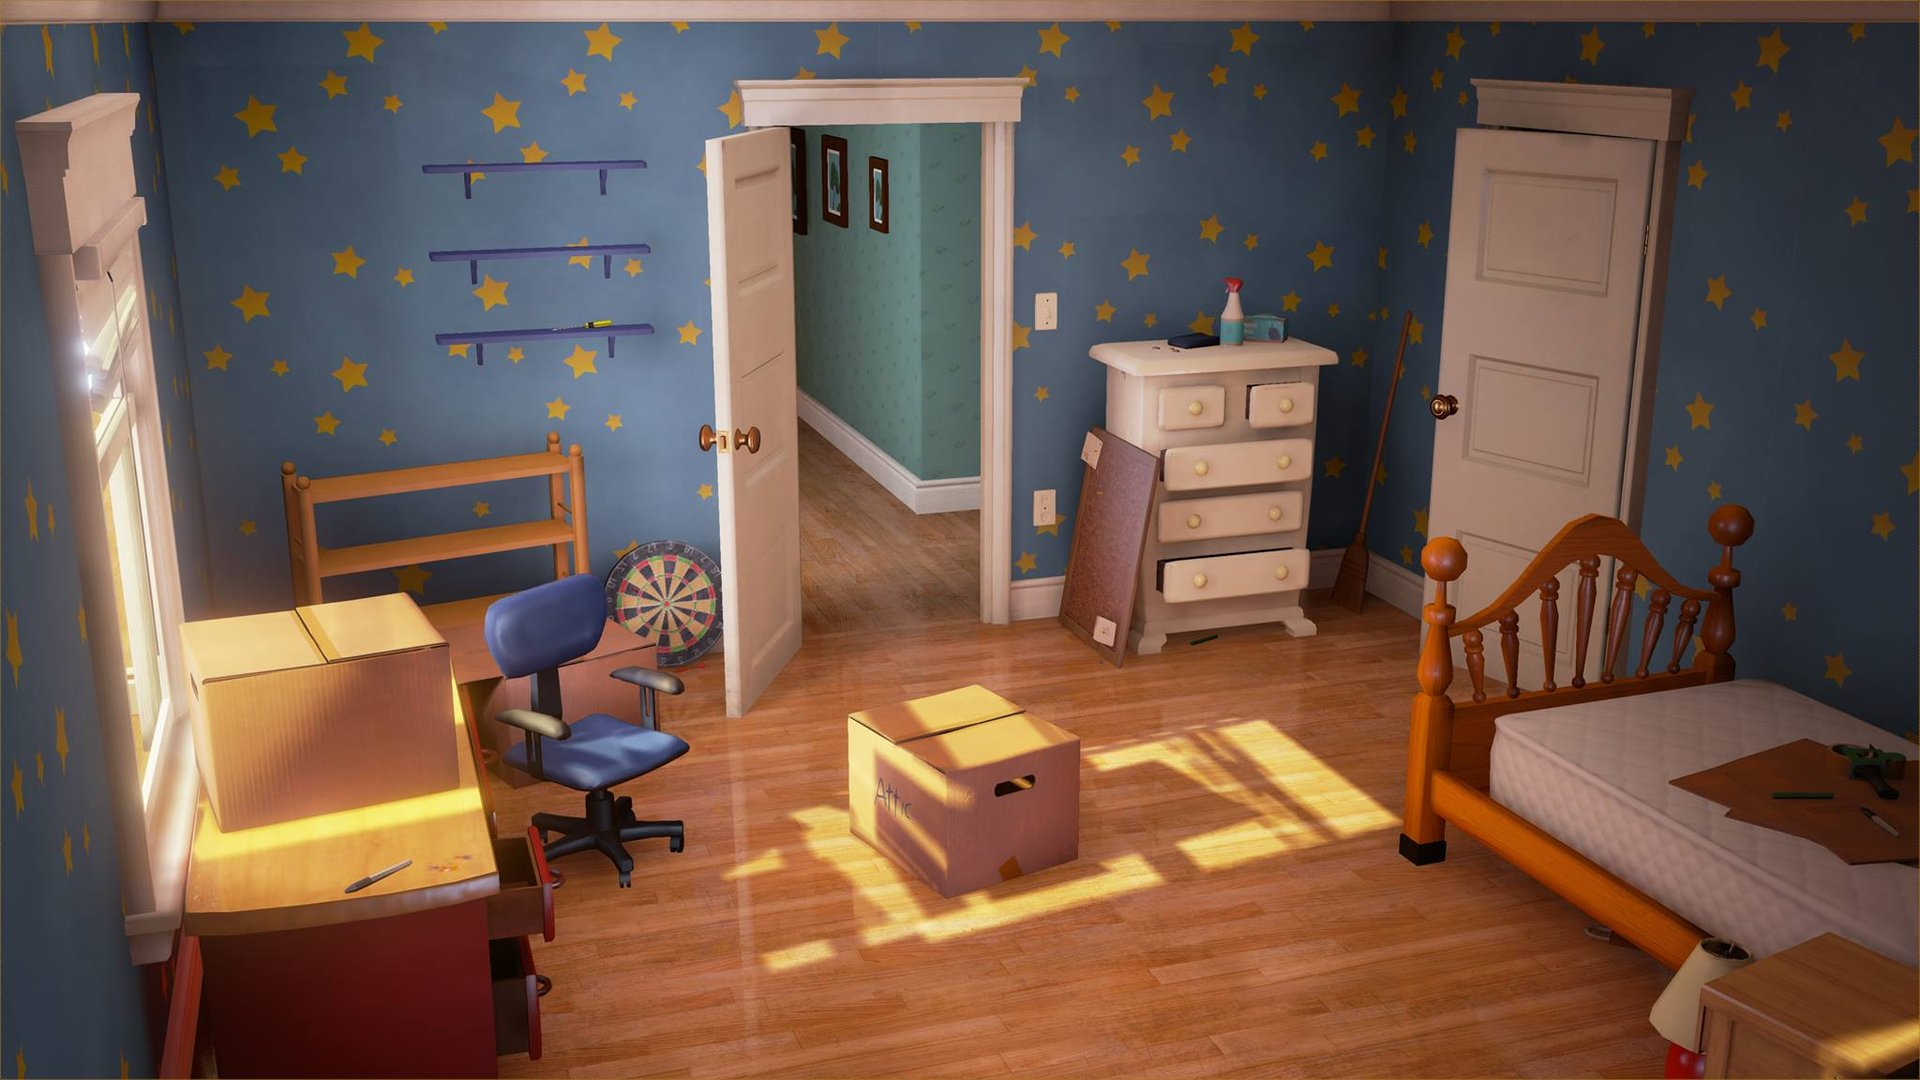 Artstation Toy Story Andy S Room Group Project